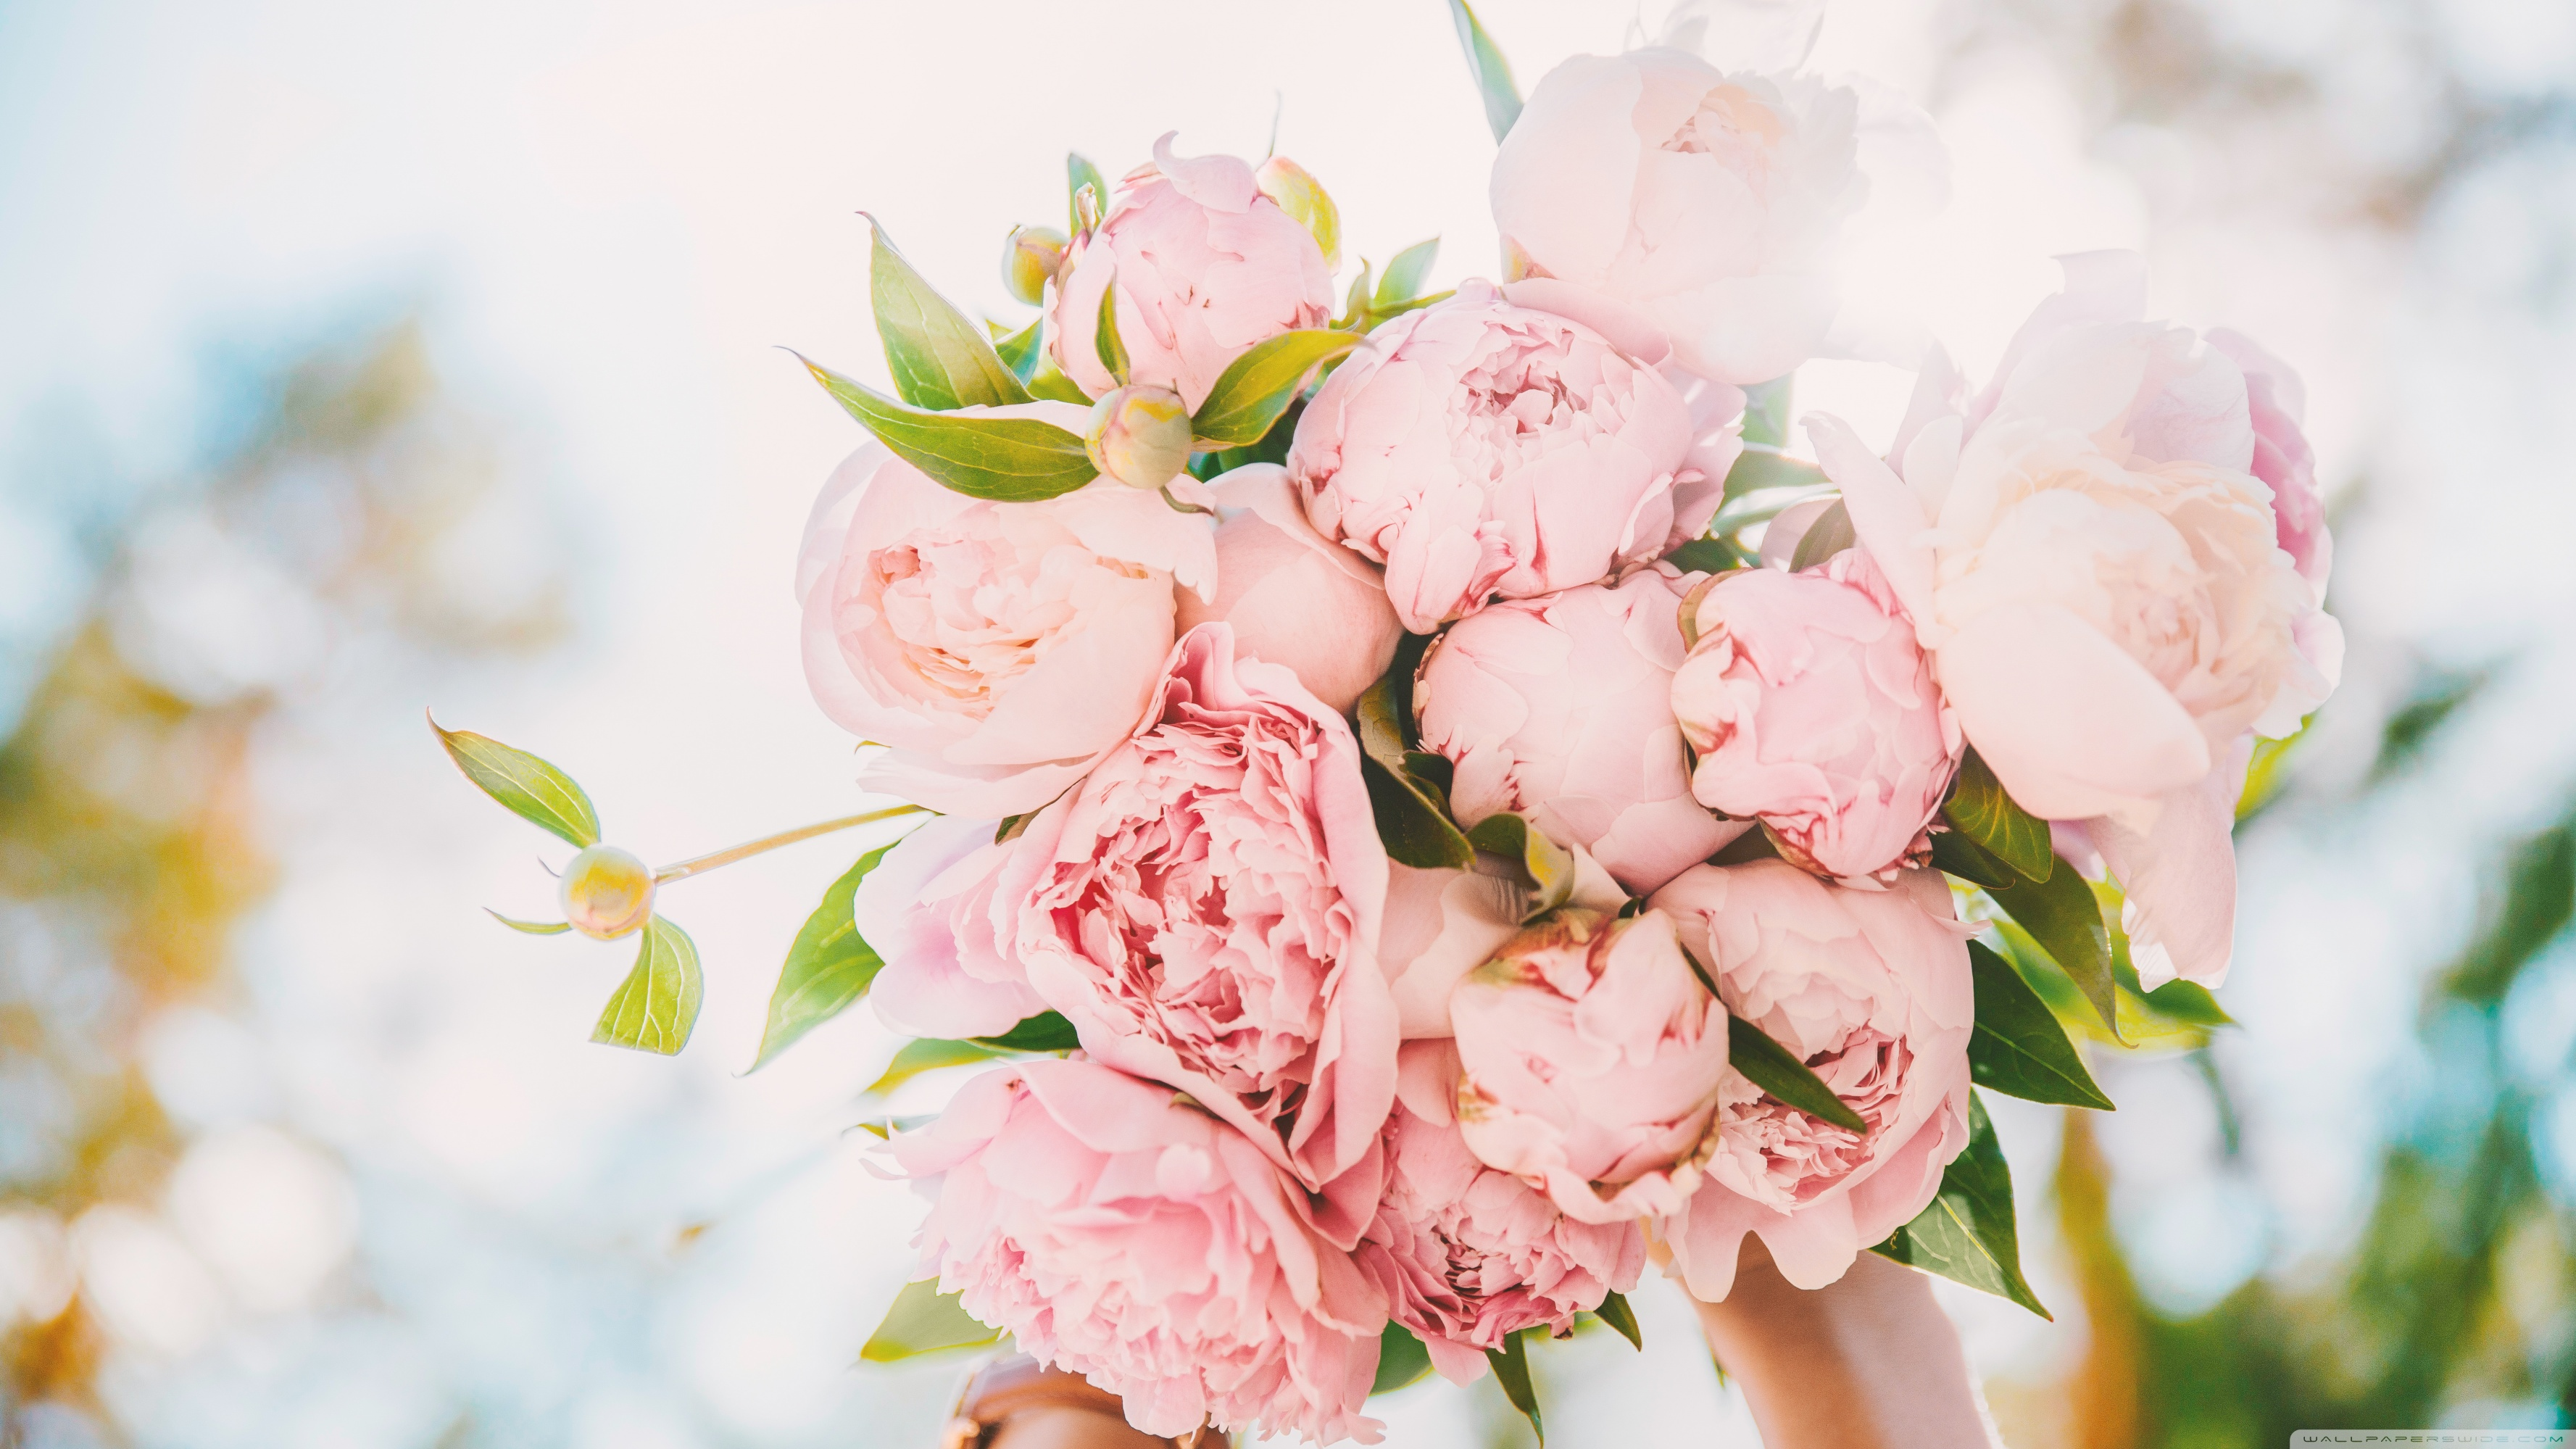 Light Pink Peonies Bouquet Wallpapers Wallpaper Cave